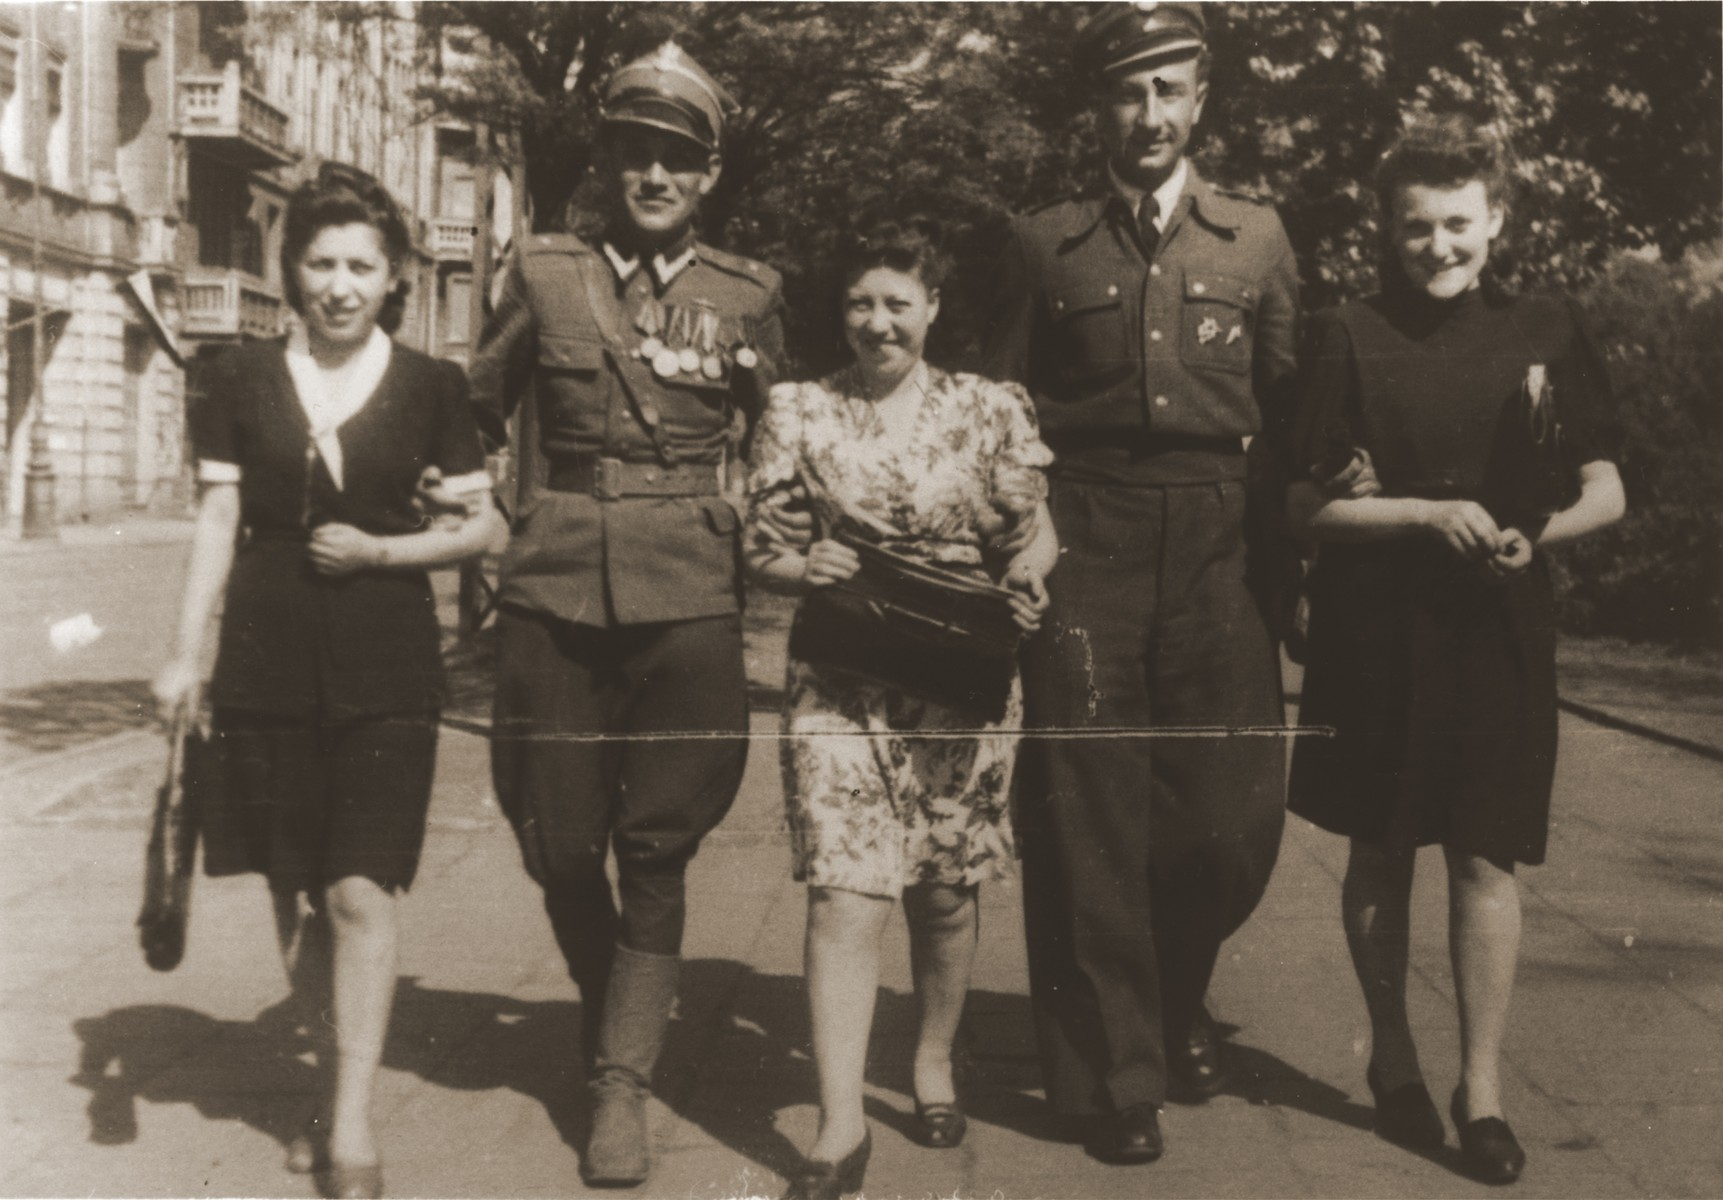 Felicja Berland (center) and two girlfriends walk along a street in Lodz with two Jewish lieutenants in the Polish Army.